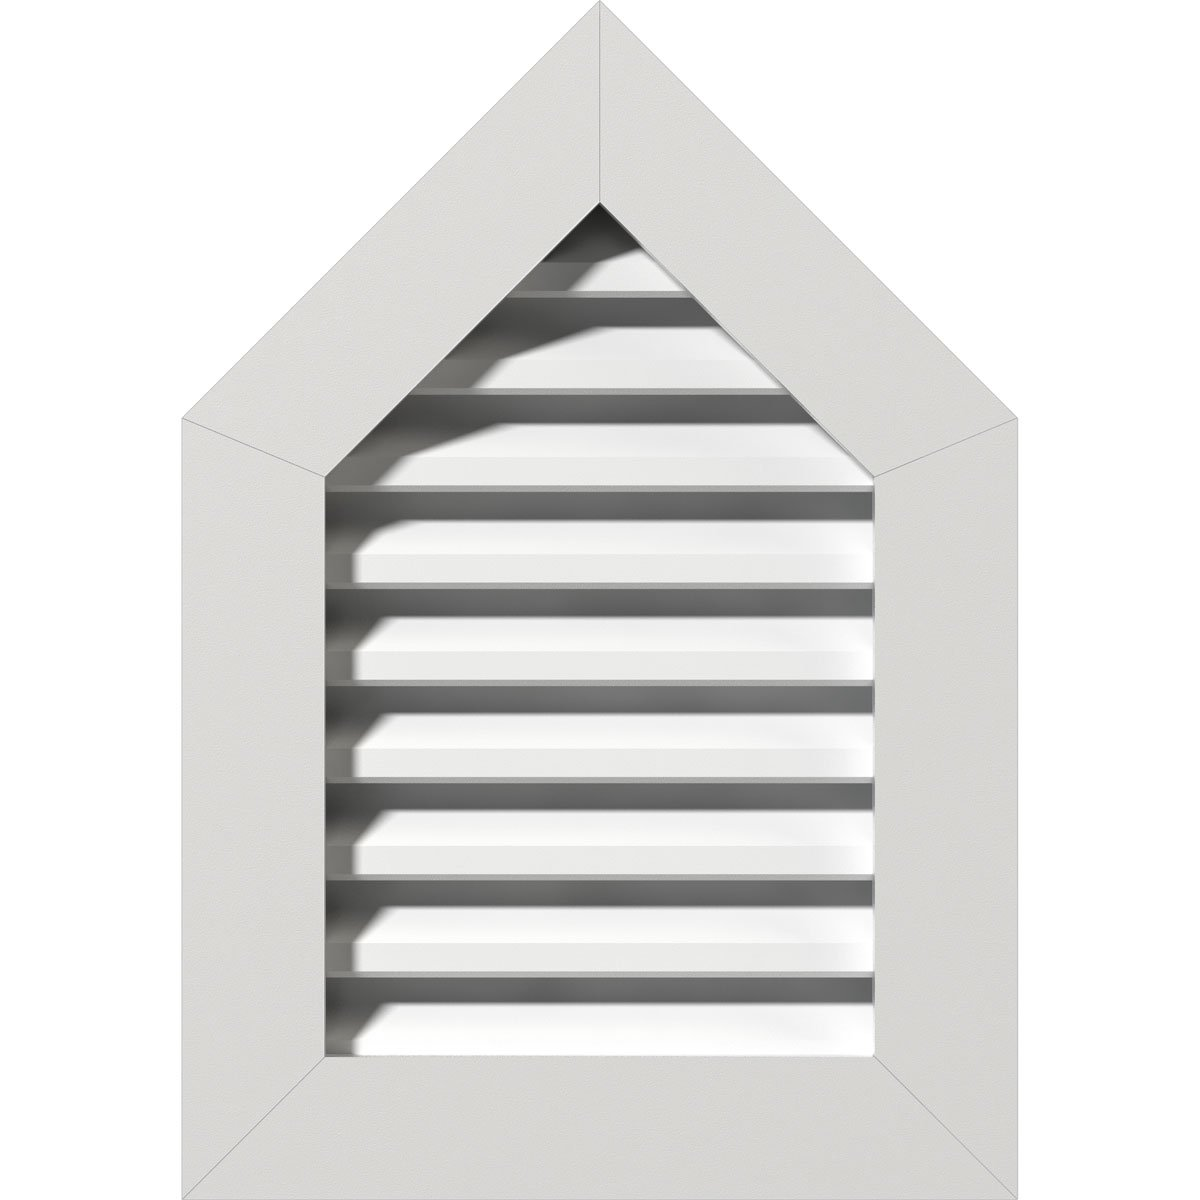 """12""""W x 12""""H Peaked Top Gable Vent (17""""W x 17""""H Frame Size) 10/12 Pitch: Functional, PVC Gable Vent w/ 1"""" x 4"""" Flat Trim Frame"""